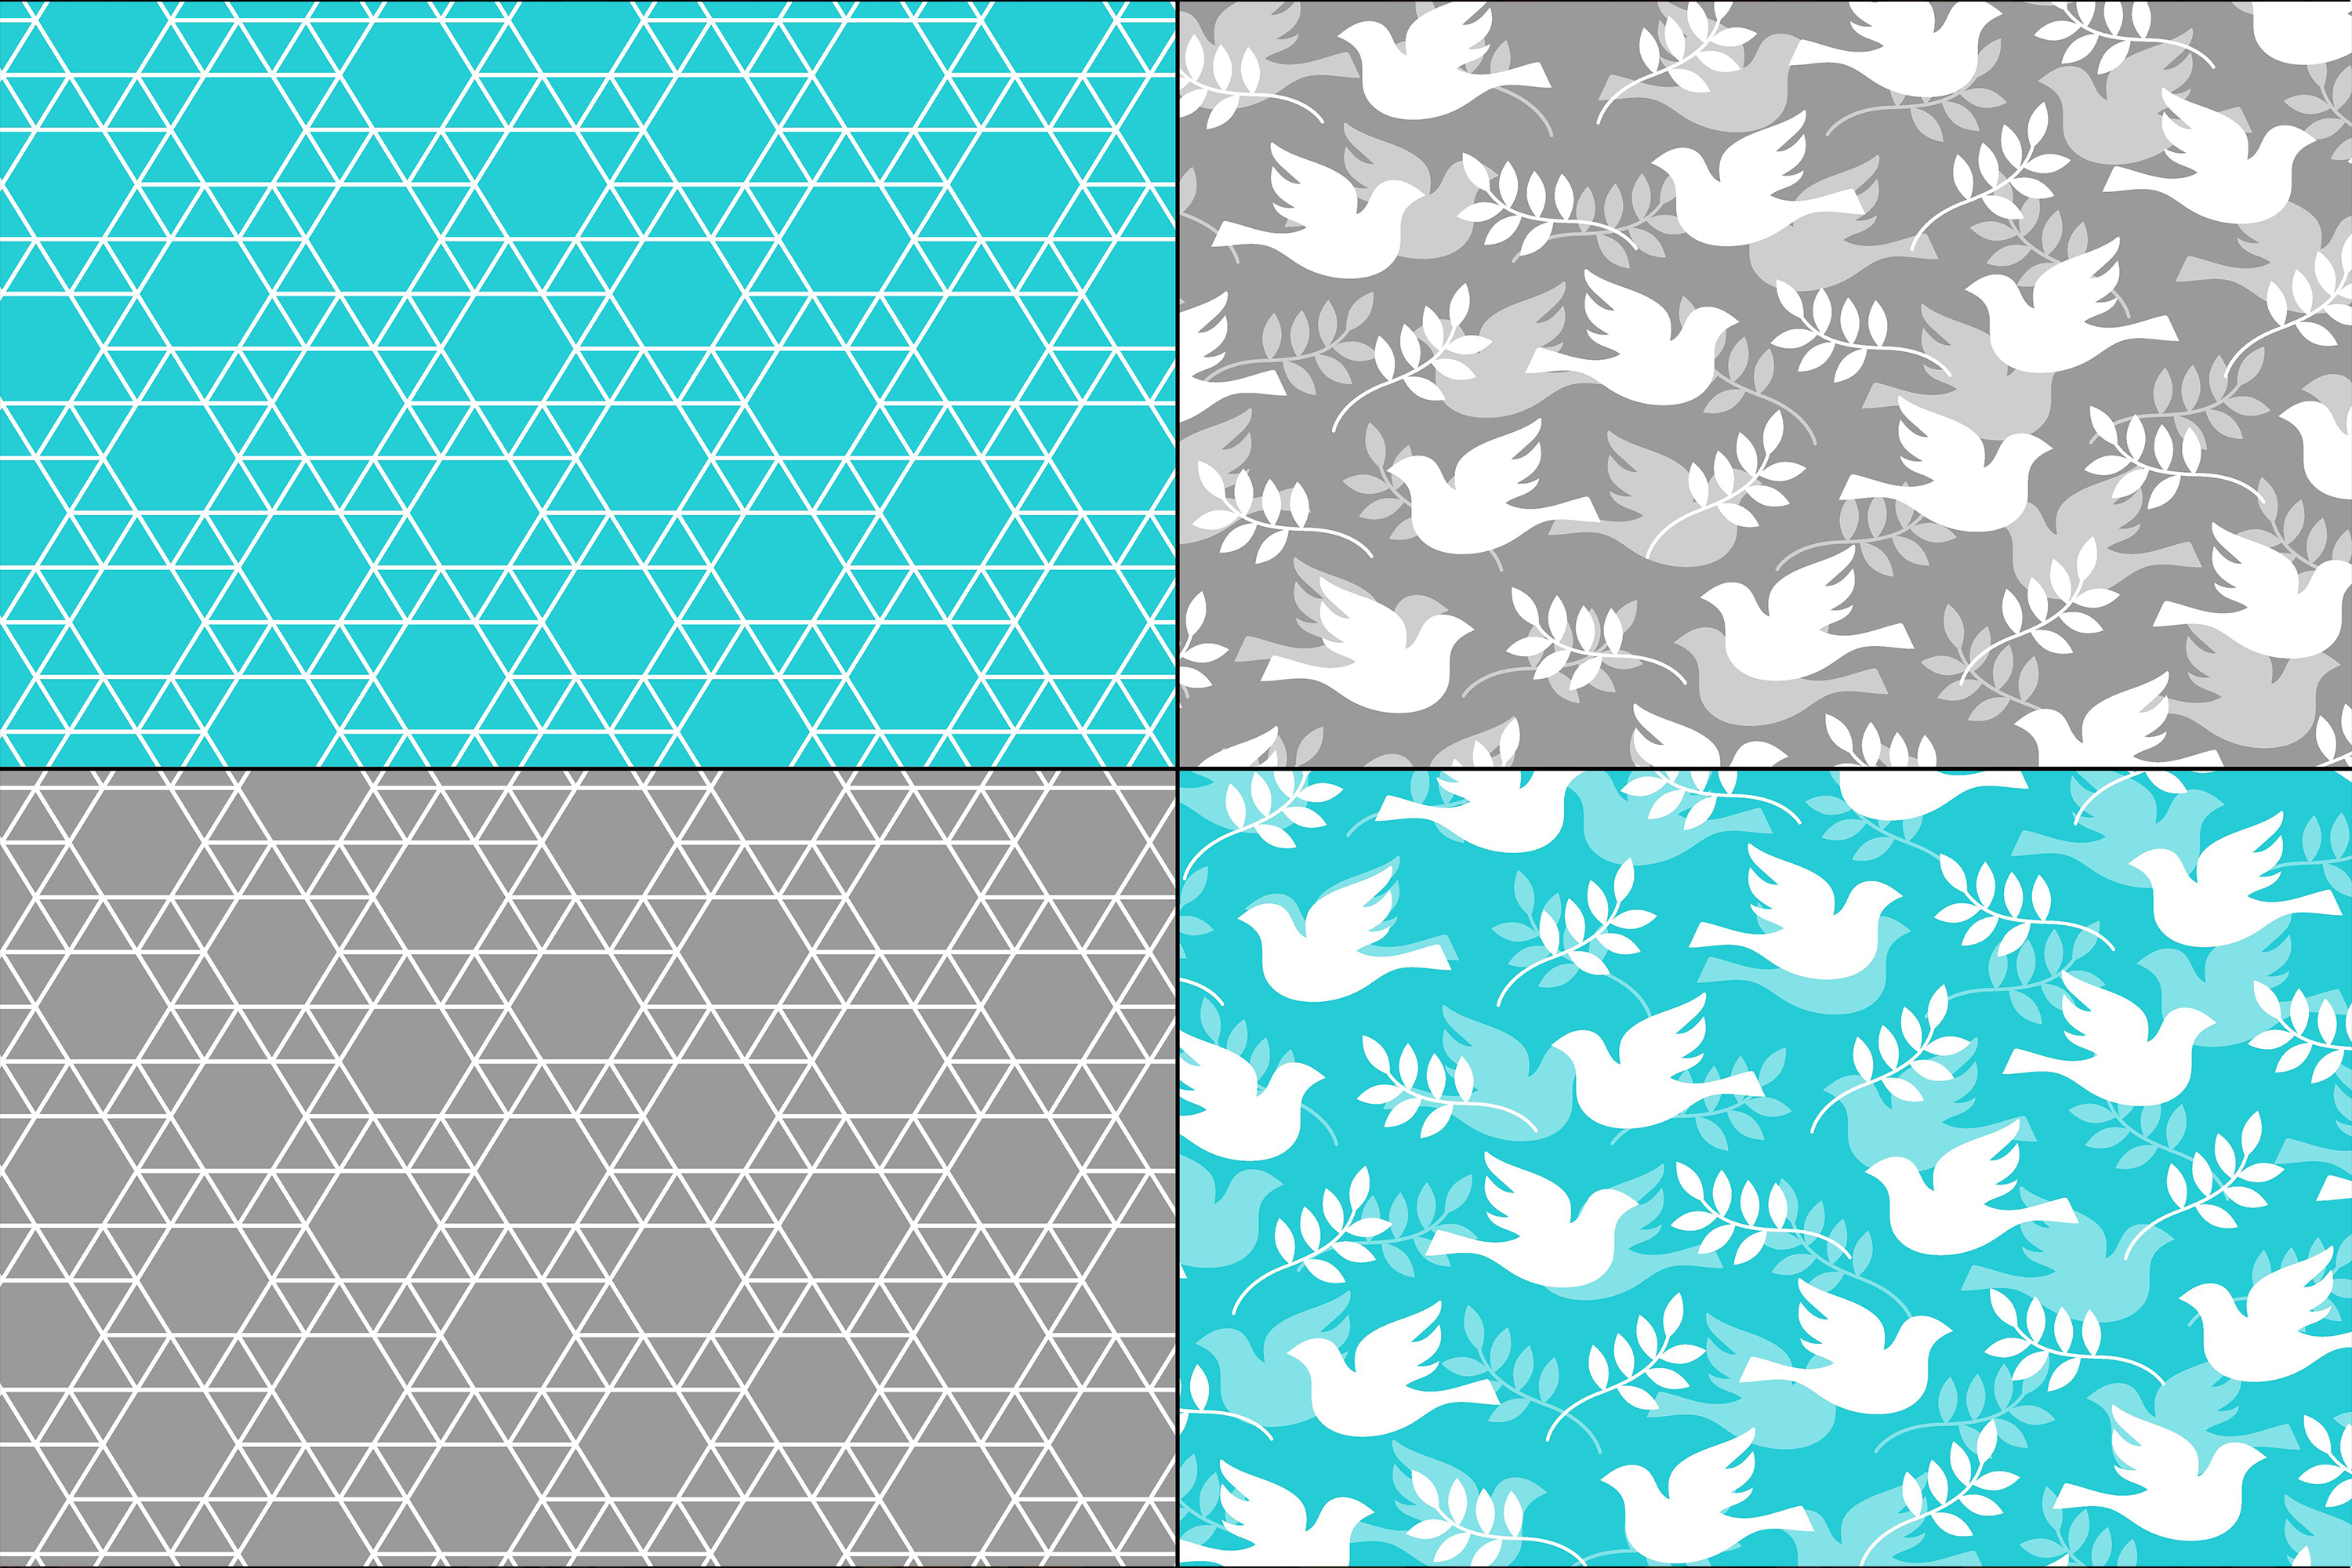 Blue Gray Hanukkah Patterns example image 2